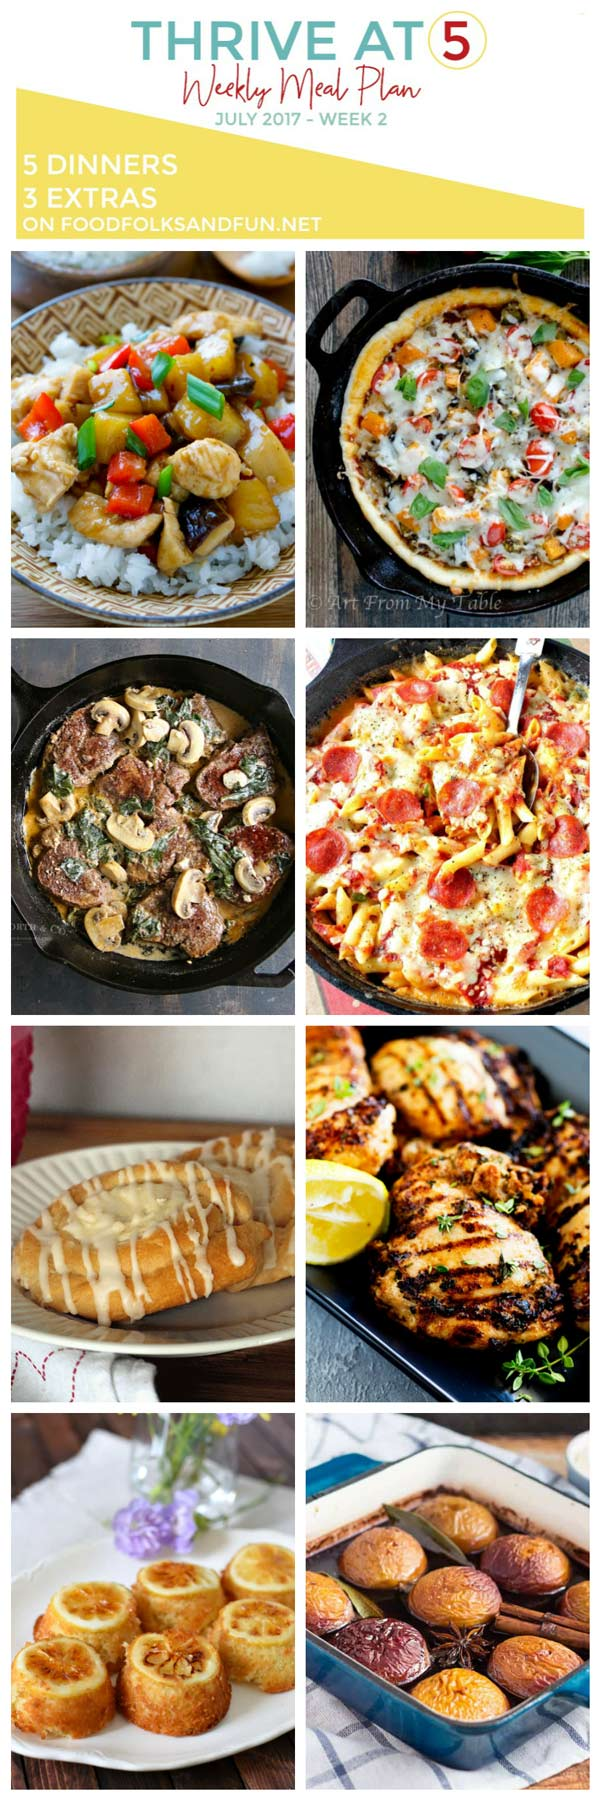 Dinner ideas in a collage with text overlay for Pinterest